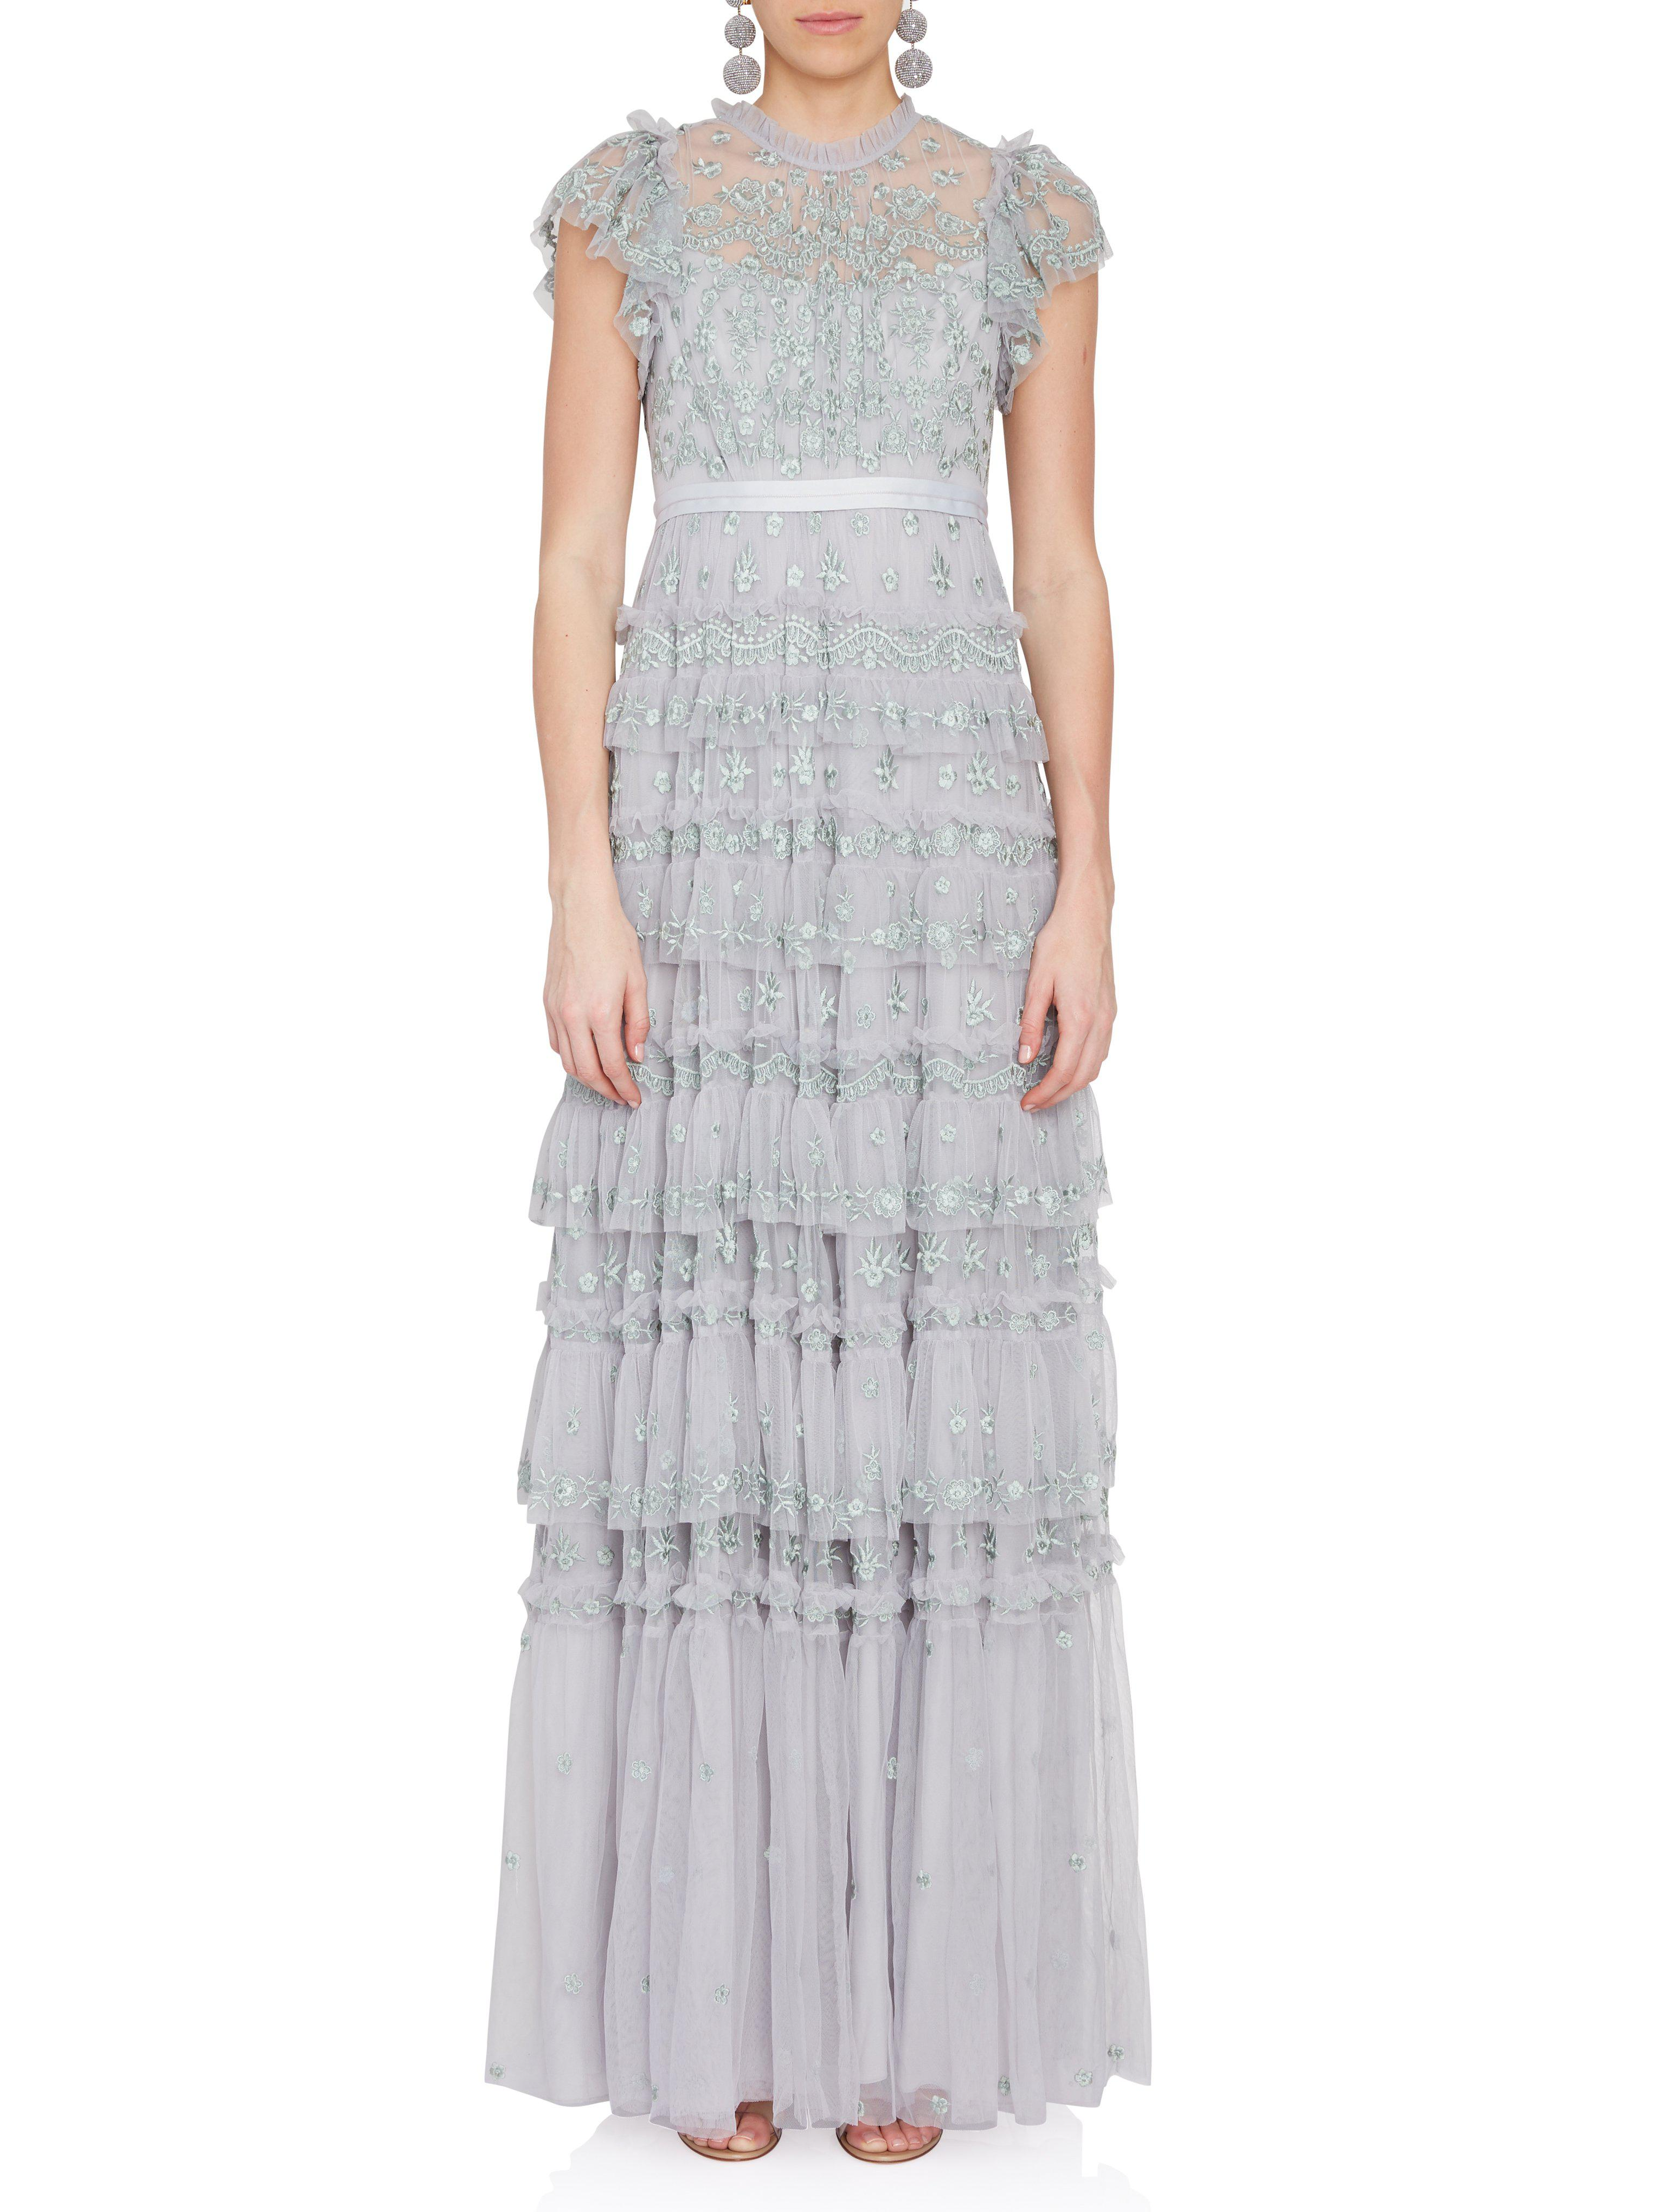 Lyst - Needle & Thread Darcy Mint Gown